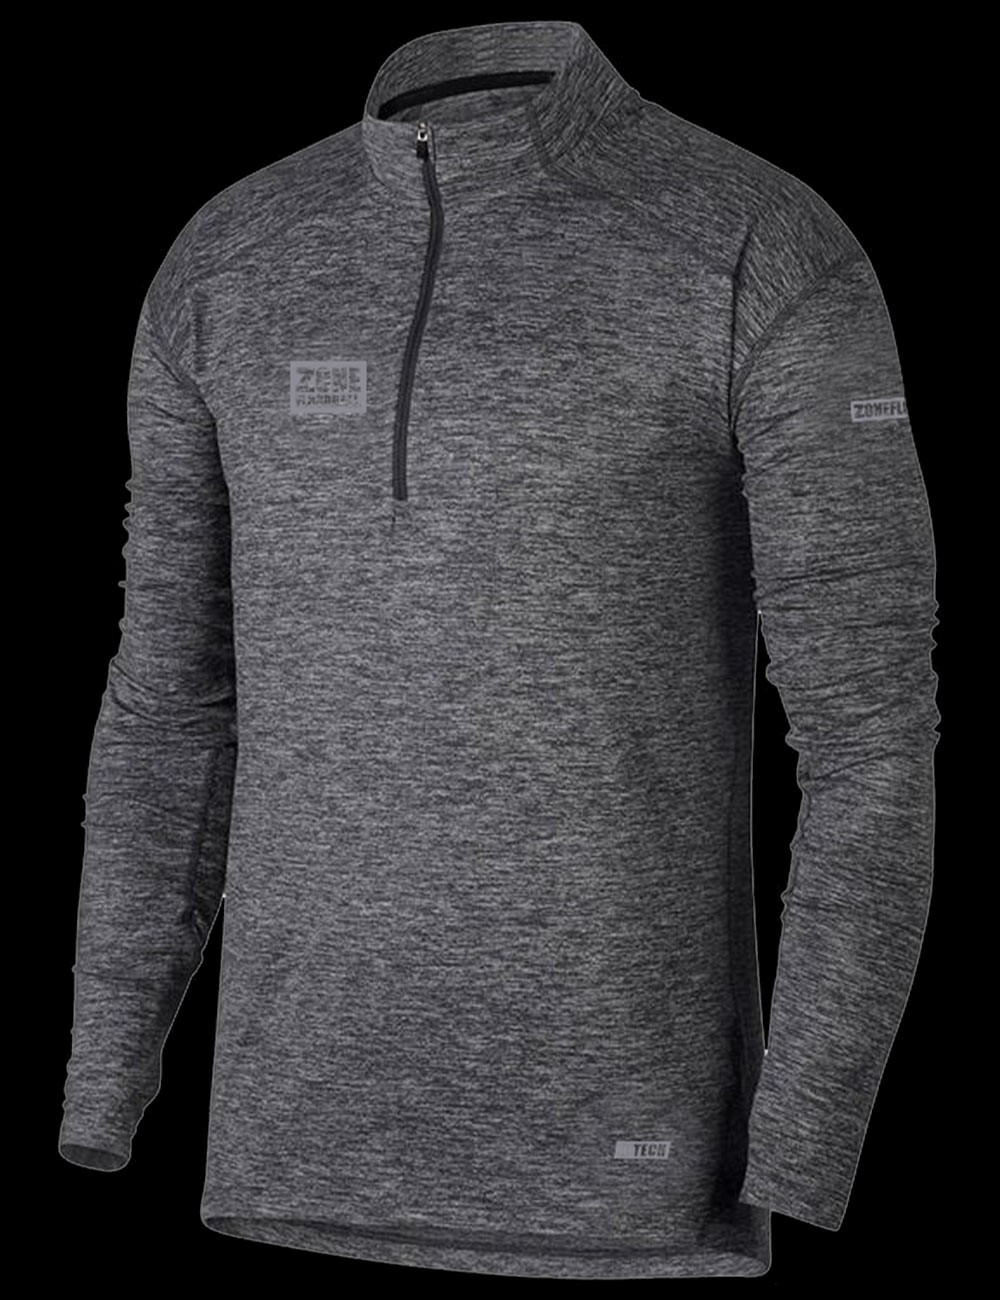 Zone Longsleeve Shirt Hitech dark grey